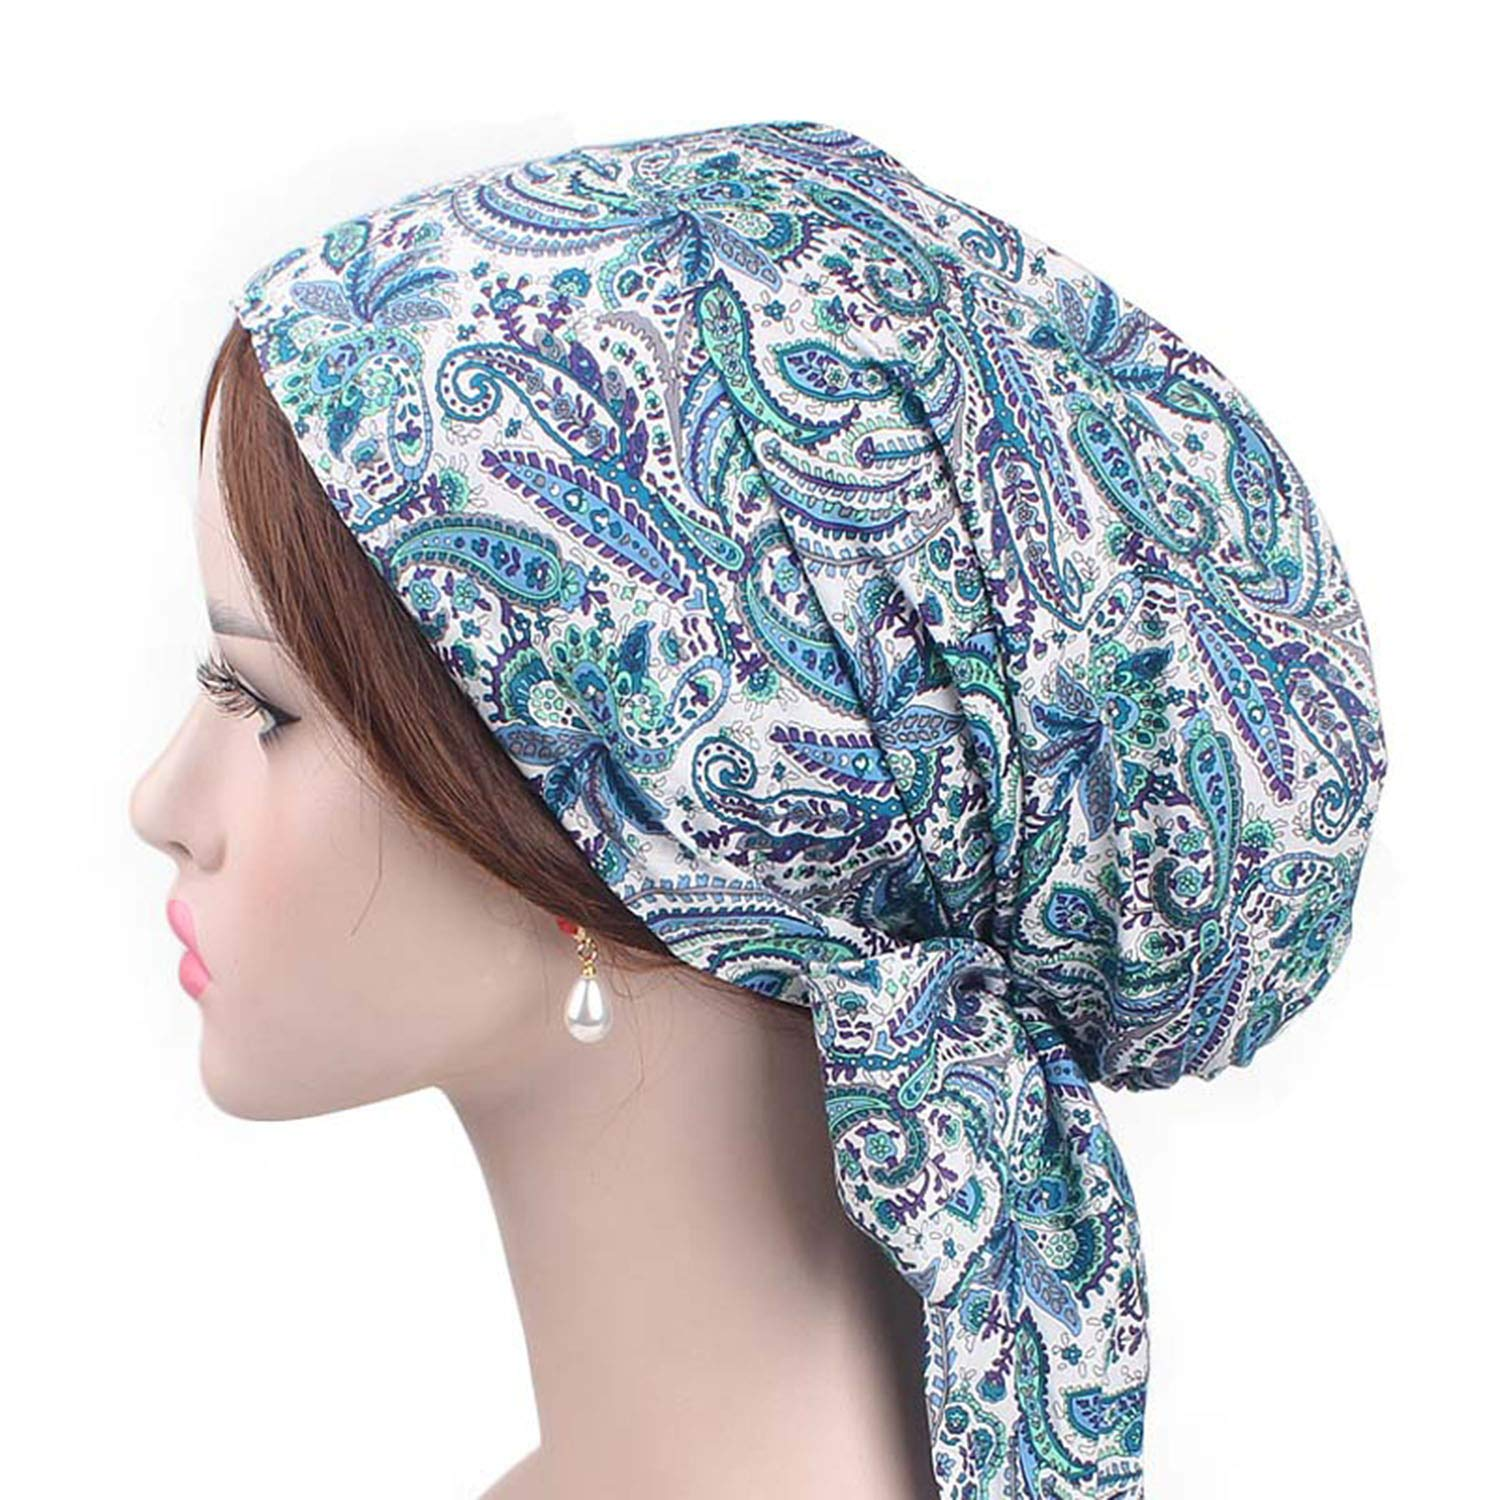 DHSPKN Chemo Headwear Cancer Cap for Women Sleep Headscarf Bonnet Headwrap by DHSPKN